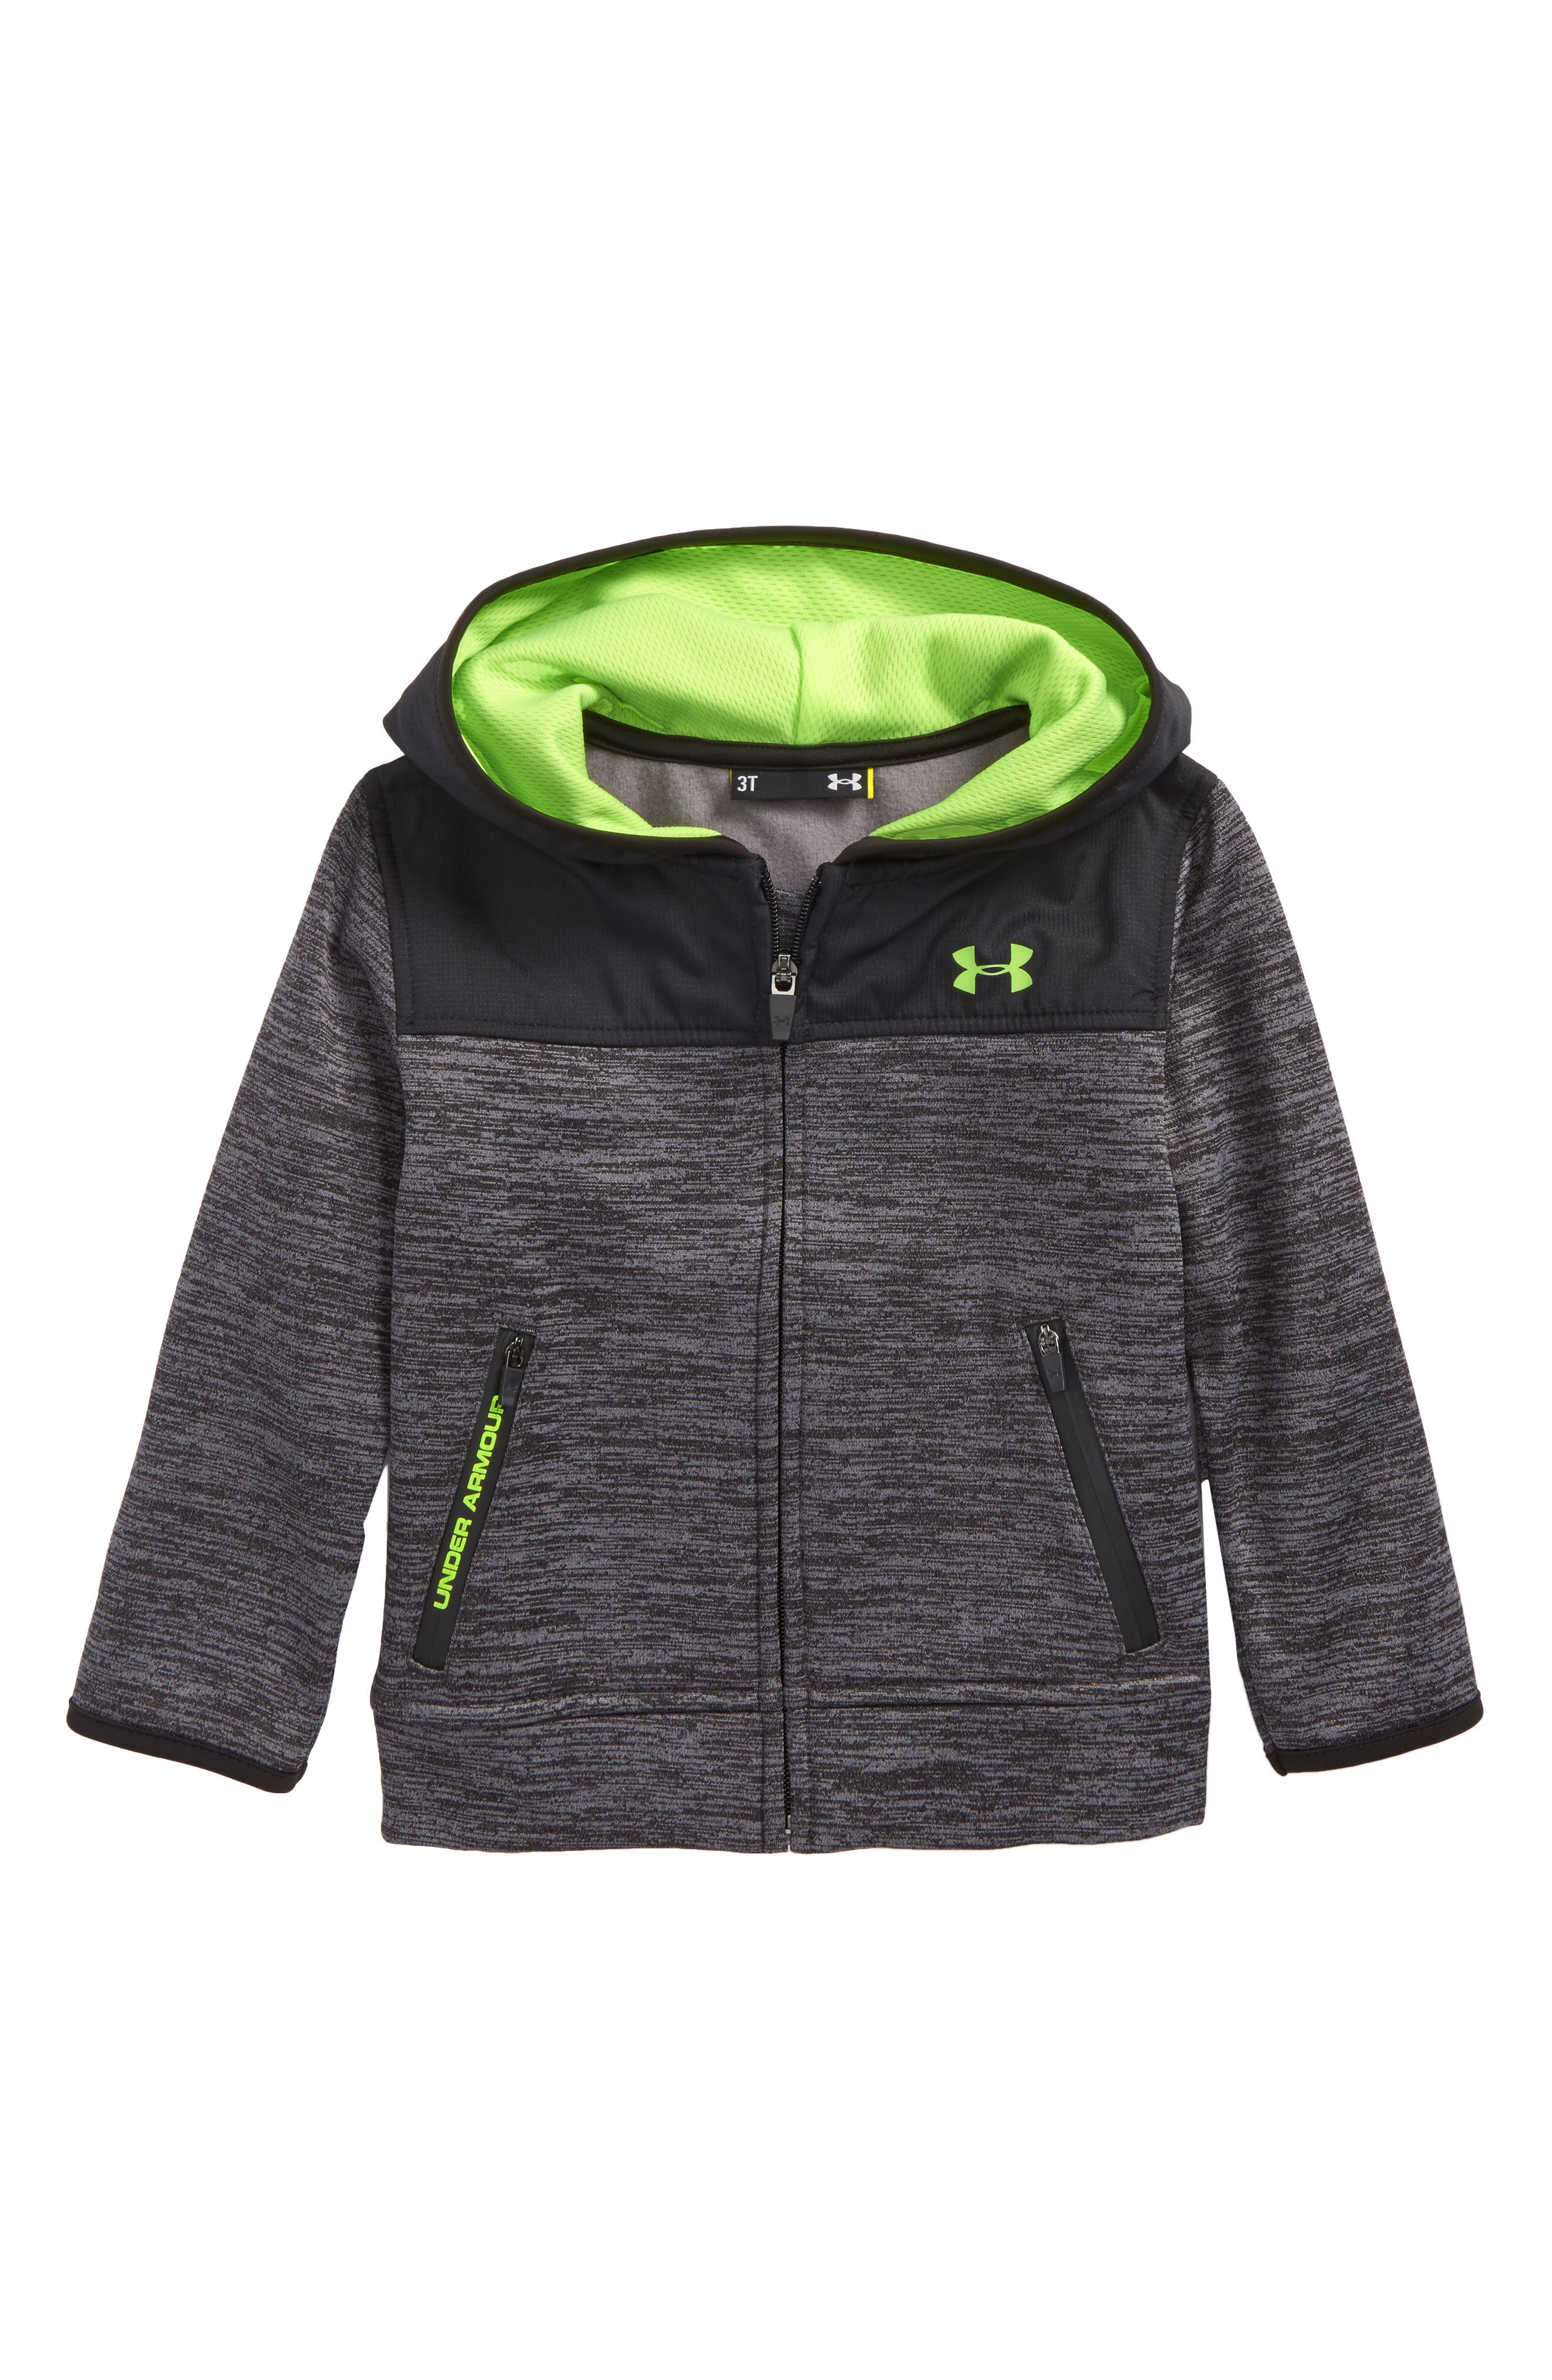 Altitude Hoodie,                         Main,                         color, Carbon Heather